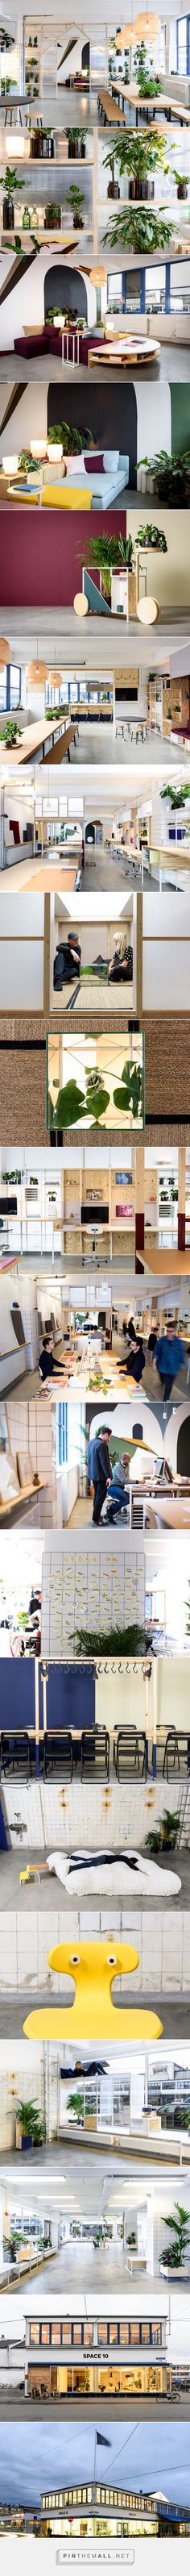 Space10: IKEA's New External Innovation Lab - Design Milk - created via https://pinthemall.net